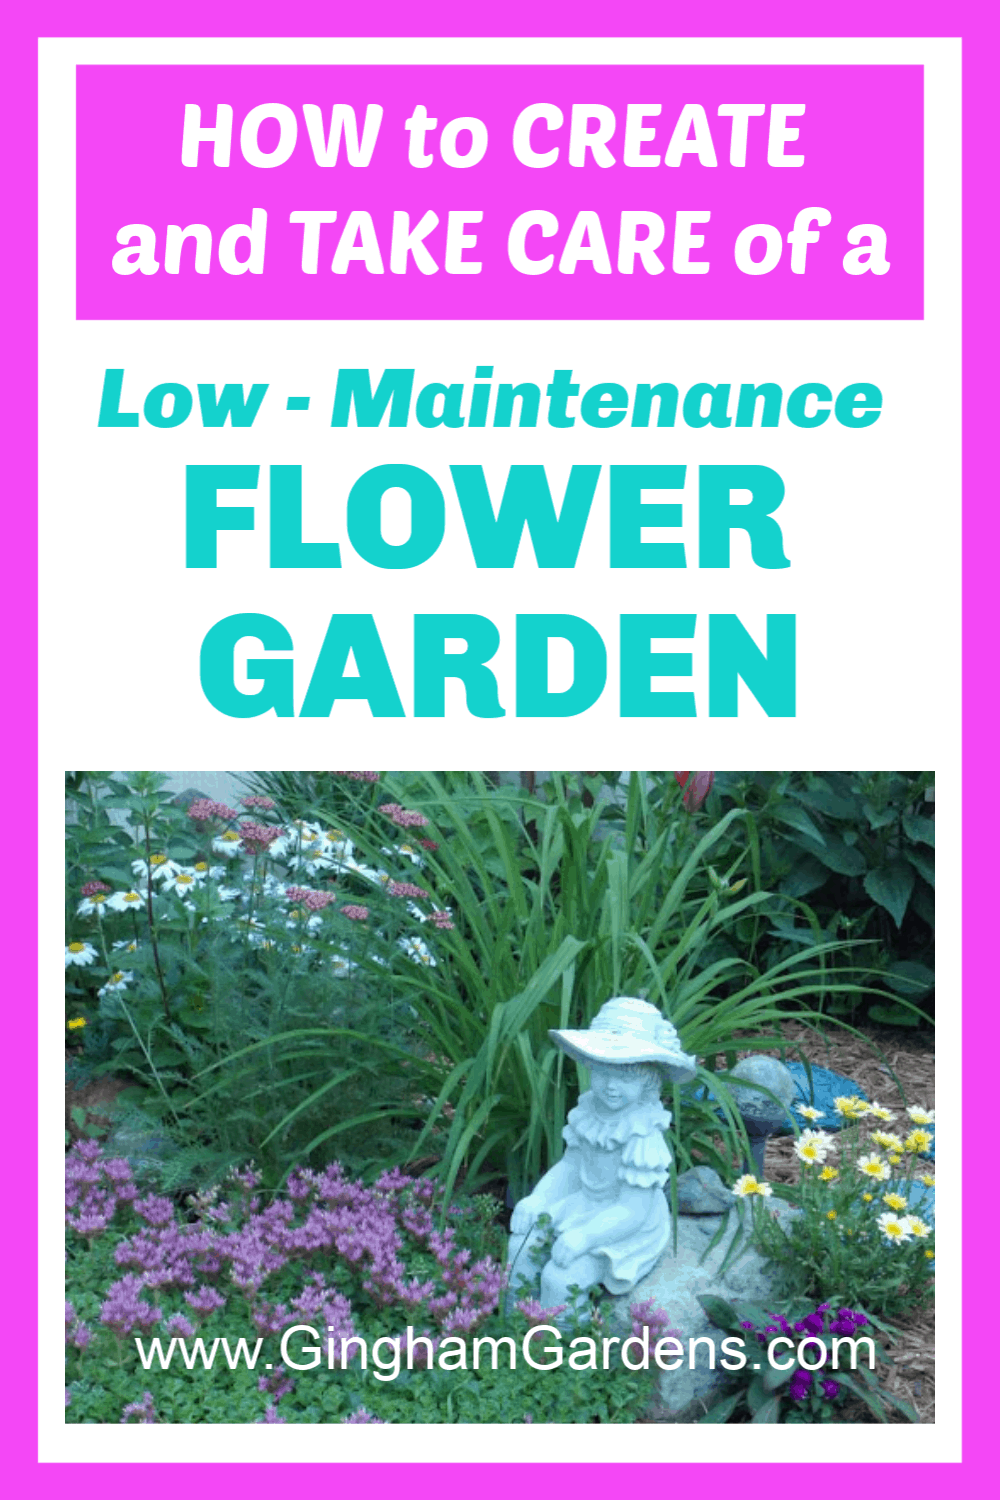 Image of Flower Garden with Text Overlay - How to Create and Care for a Low Maintenance Flower Garden